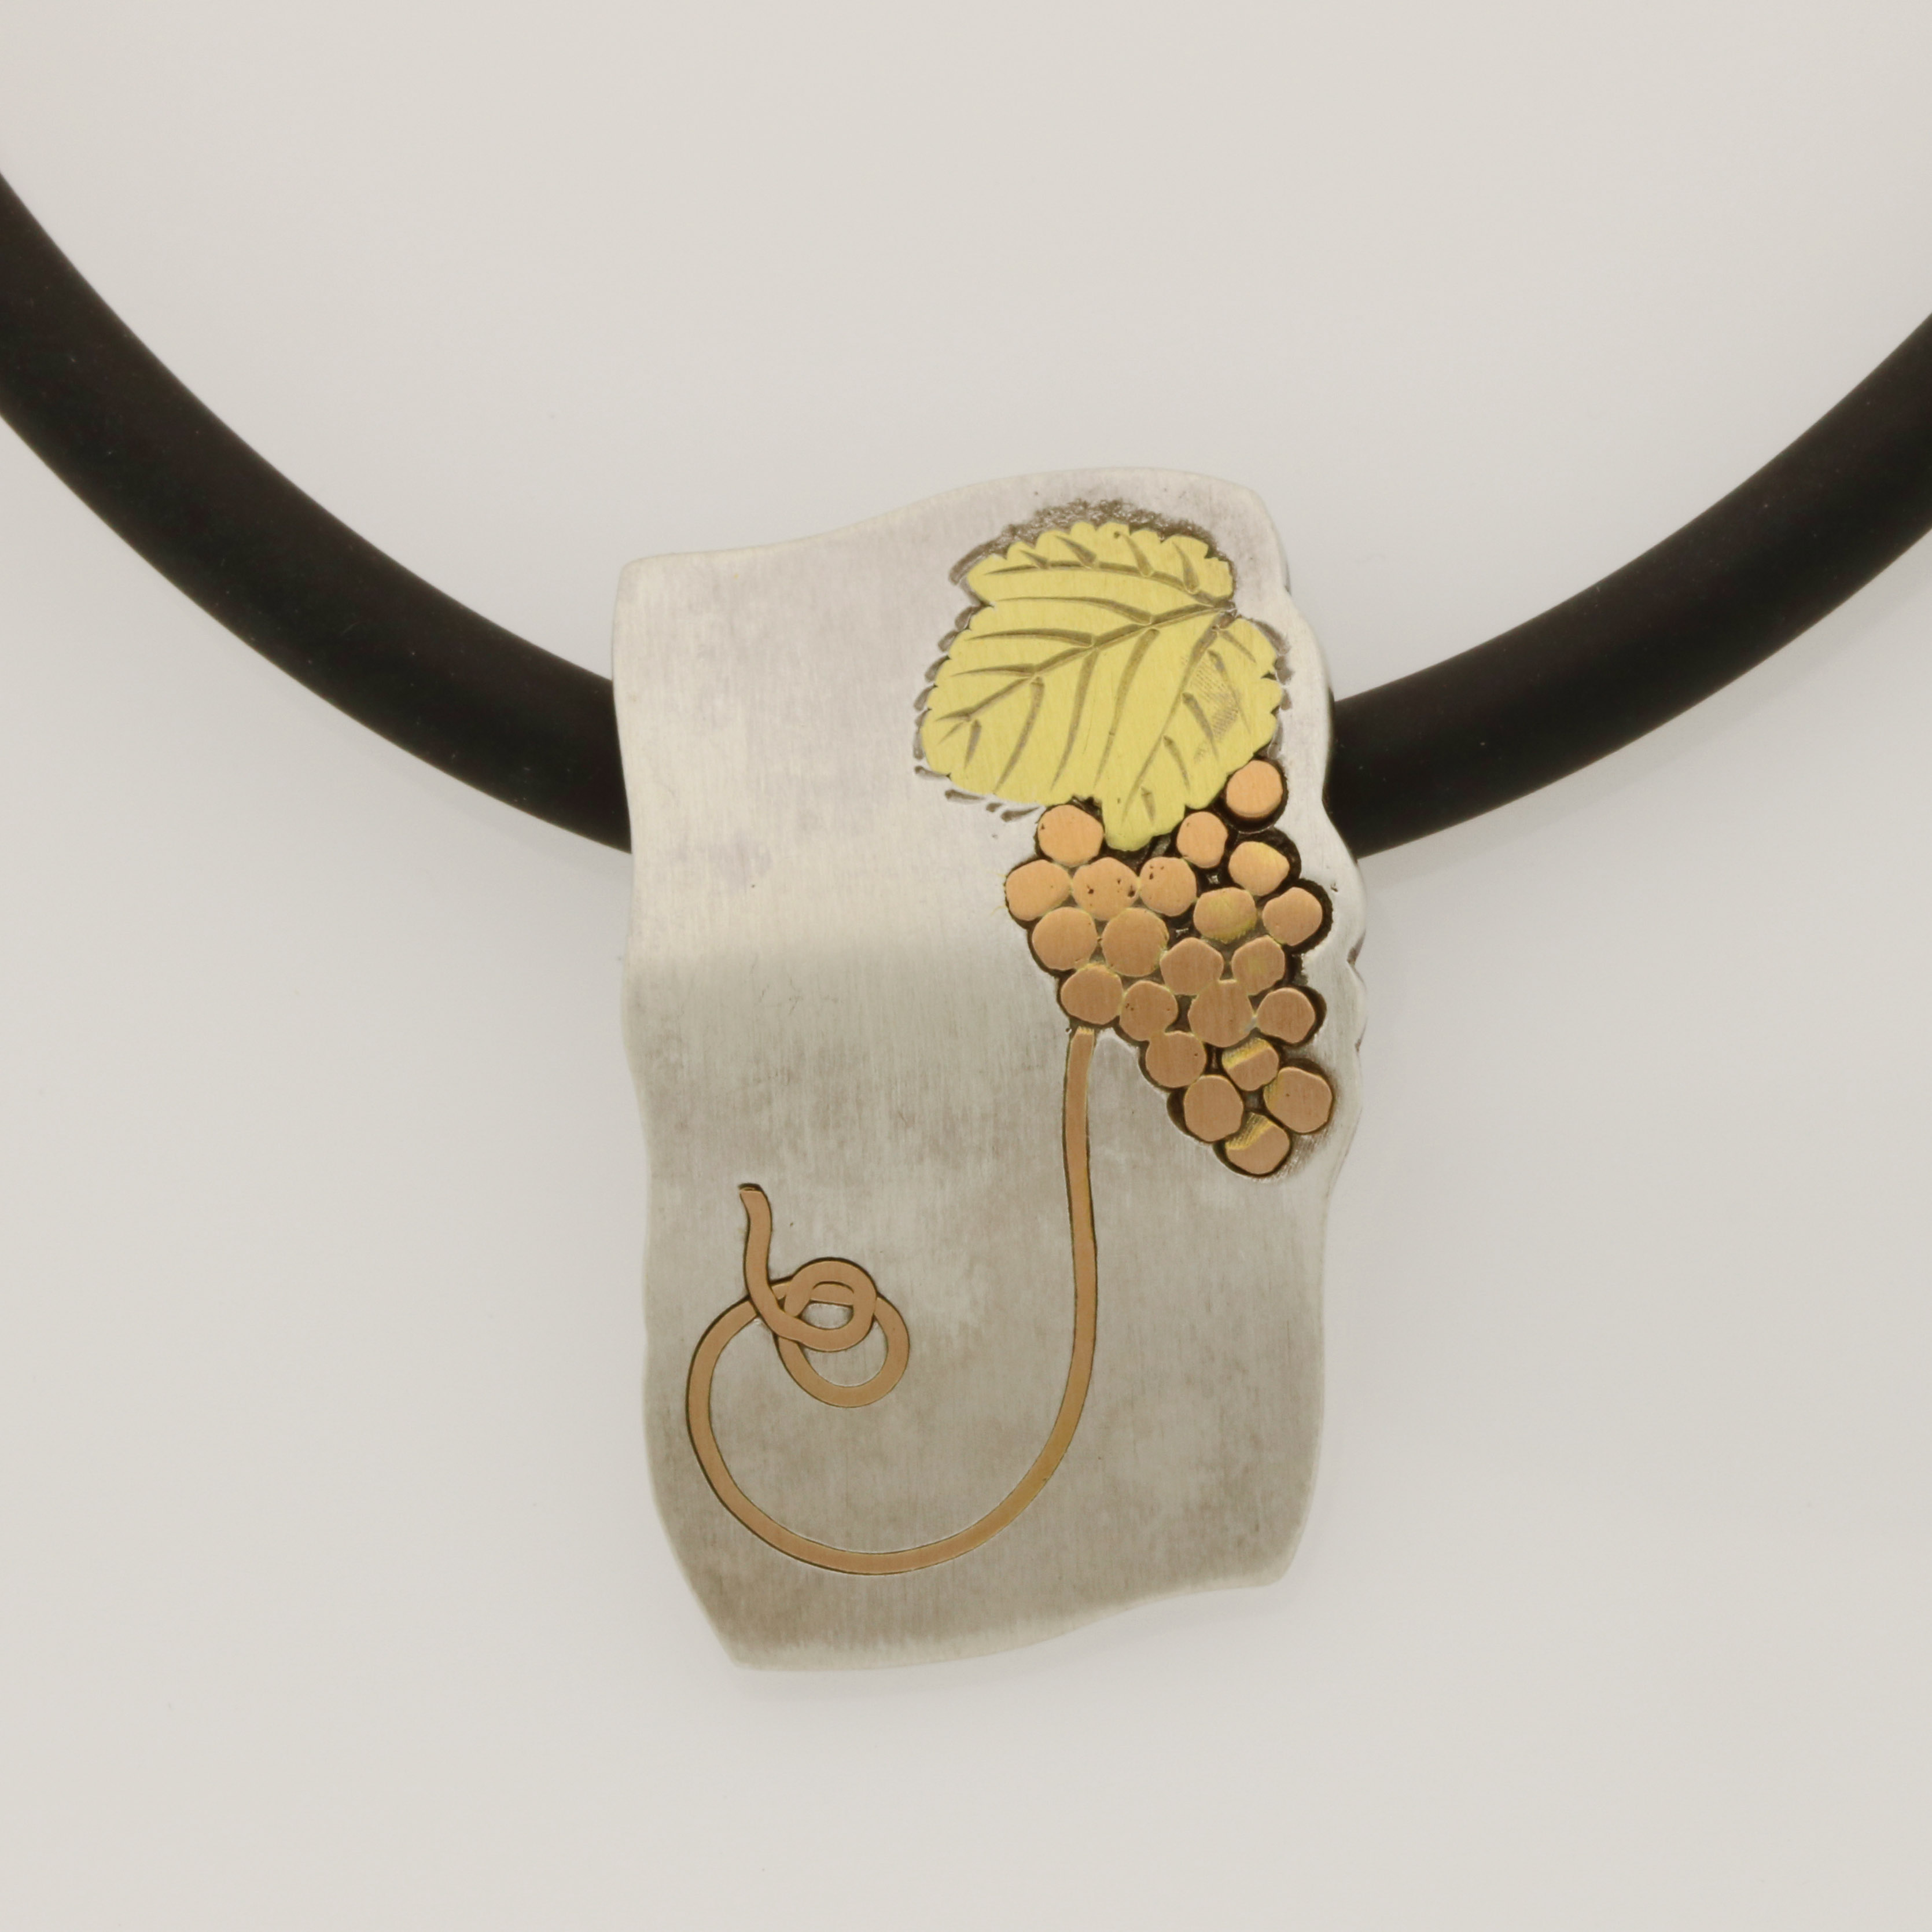 P119 Sterling silver 18ct rose and green gold grapevine pendant with CH009 black rubber necklet $600